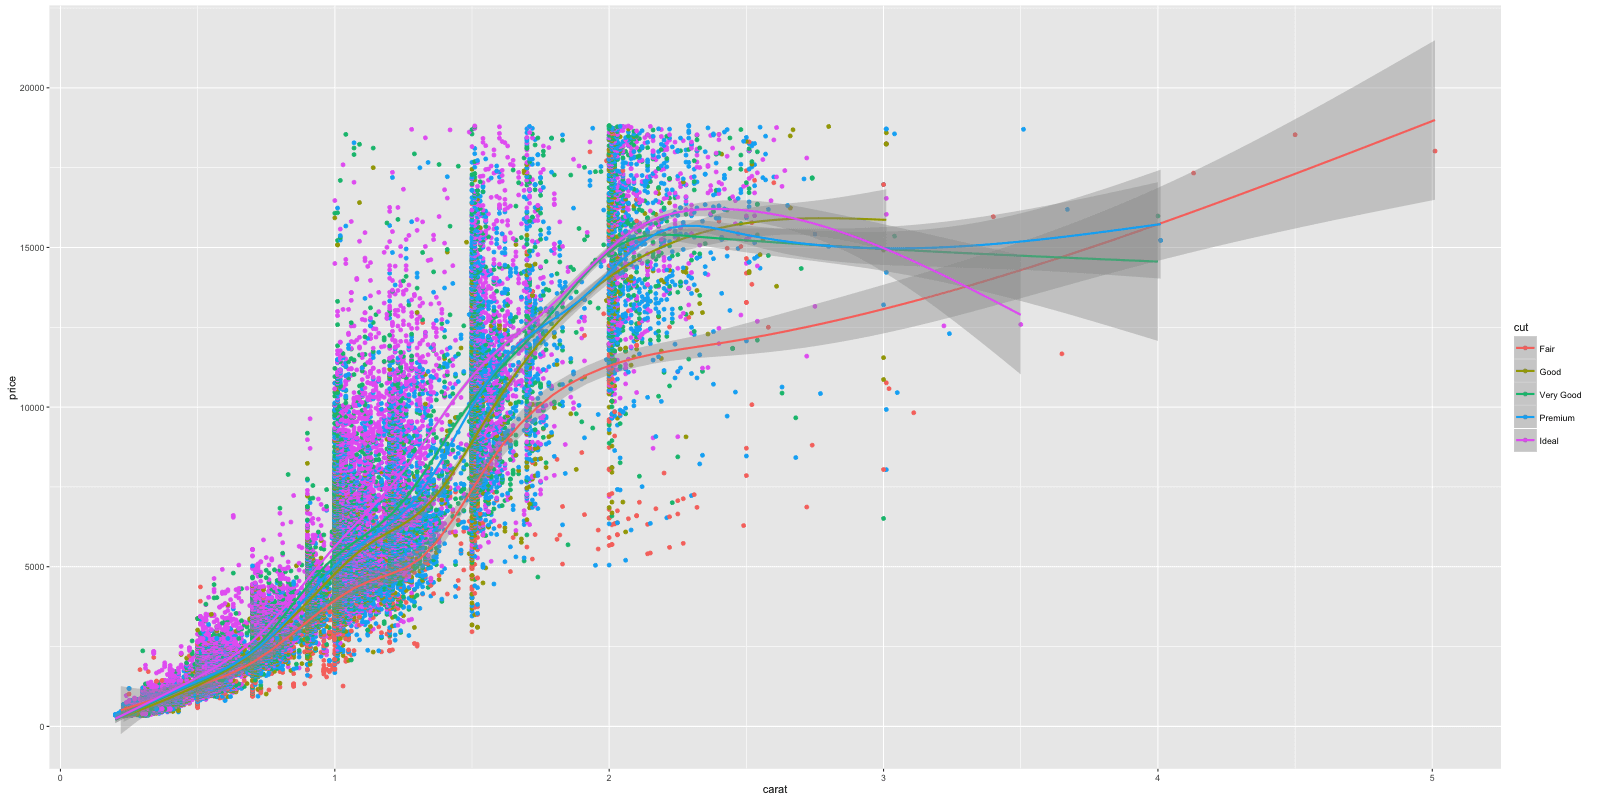 How To Make Any Plot In Ggplot2 Tutorial Geom Ignition Switch Wiring Diagram Notice The X And Y Axis Color Of Points Vary Based On Value Cut Variable Legend Was Automatically Added